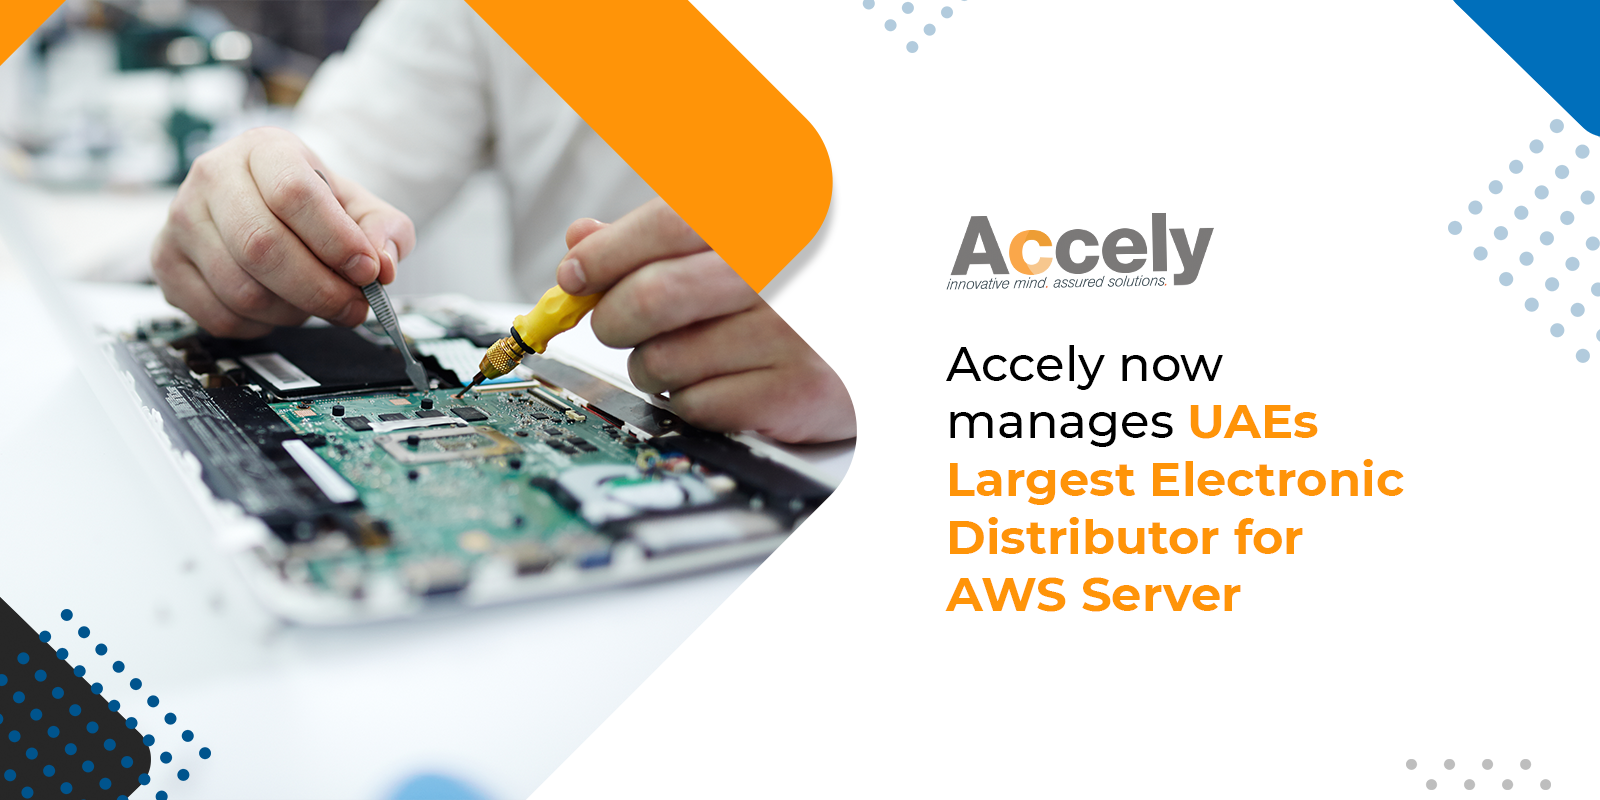 Accely now manages UAEs Largest Electronic Distributor for AWS Server